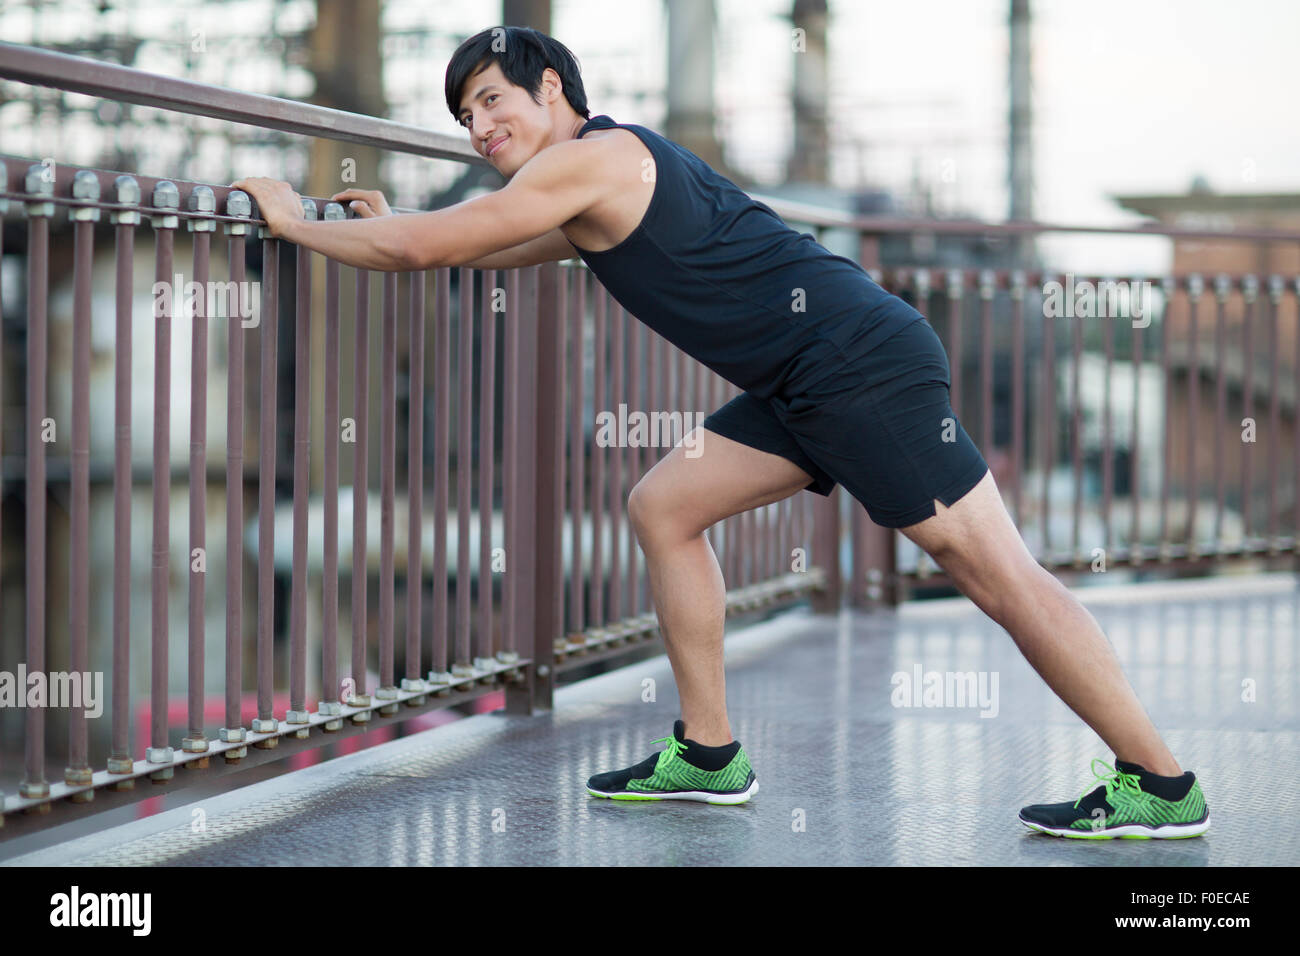 Young man exercising outdoors - Stock Image